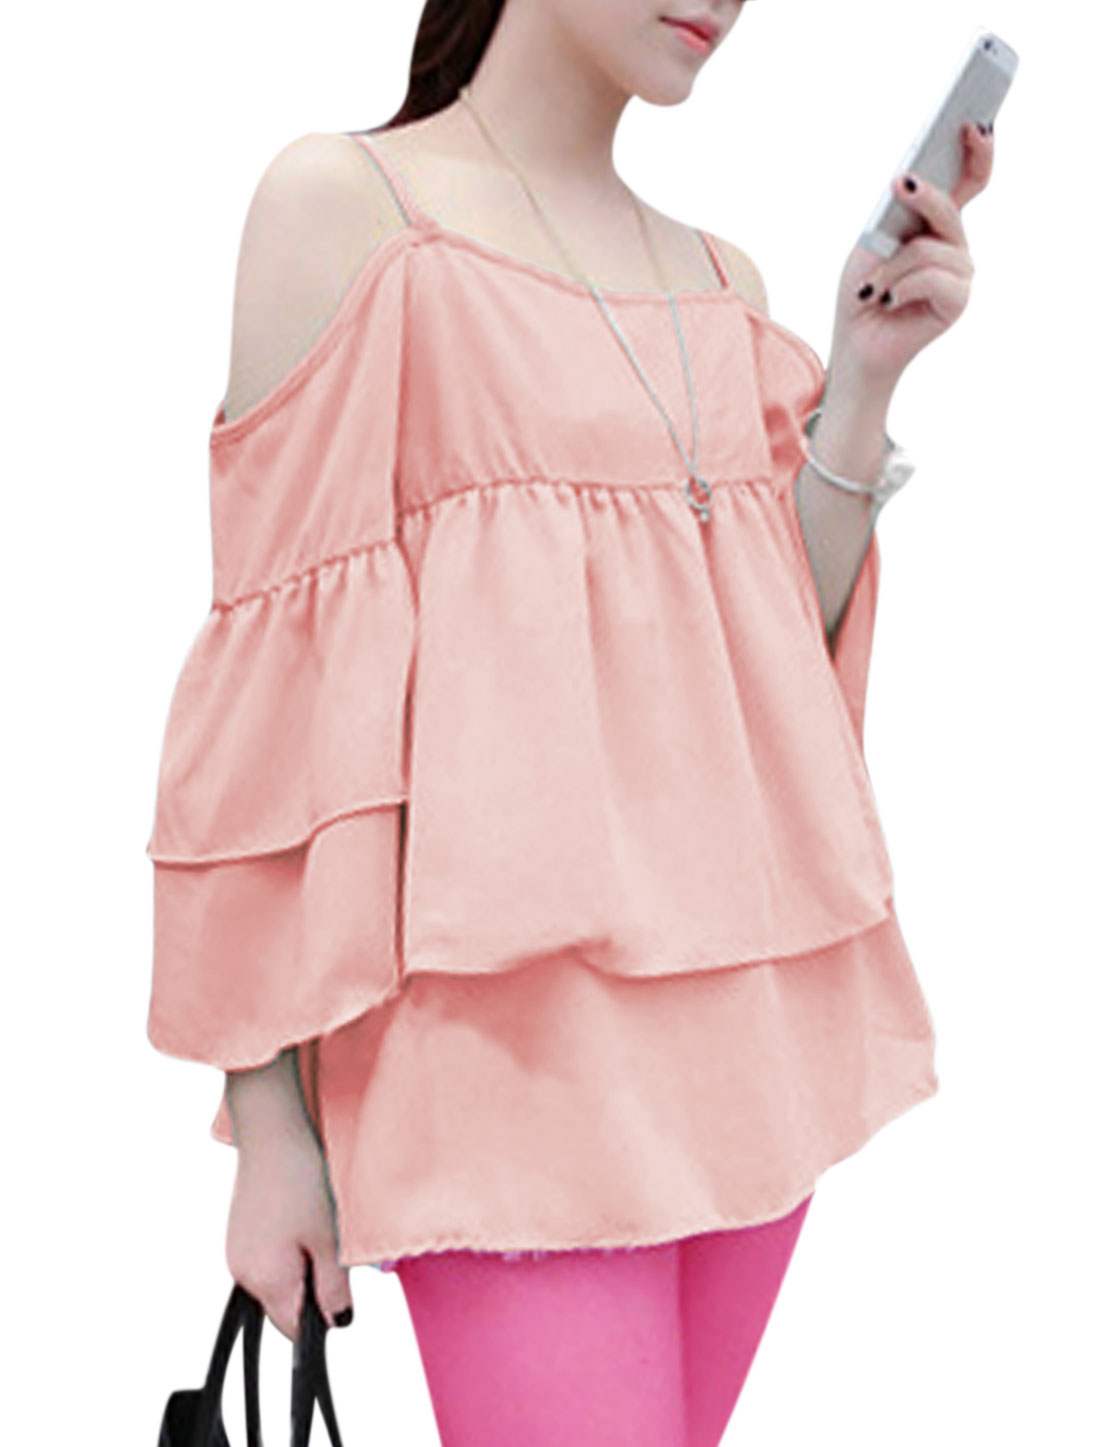 Lady Spaghetti Strap Ruffle Tiered Design Cut Out Shoulder Blouse Light Pink S